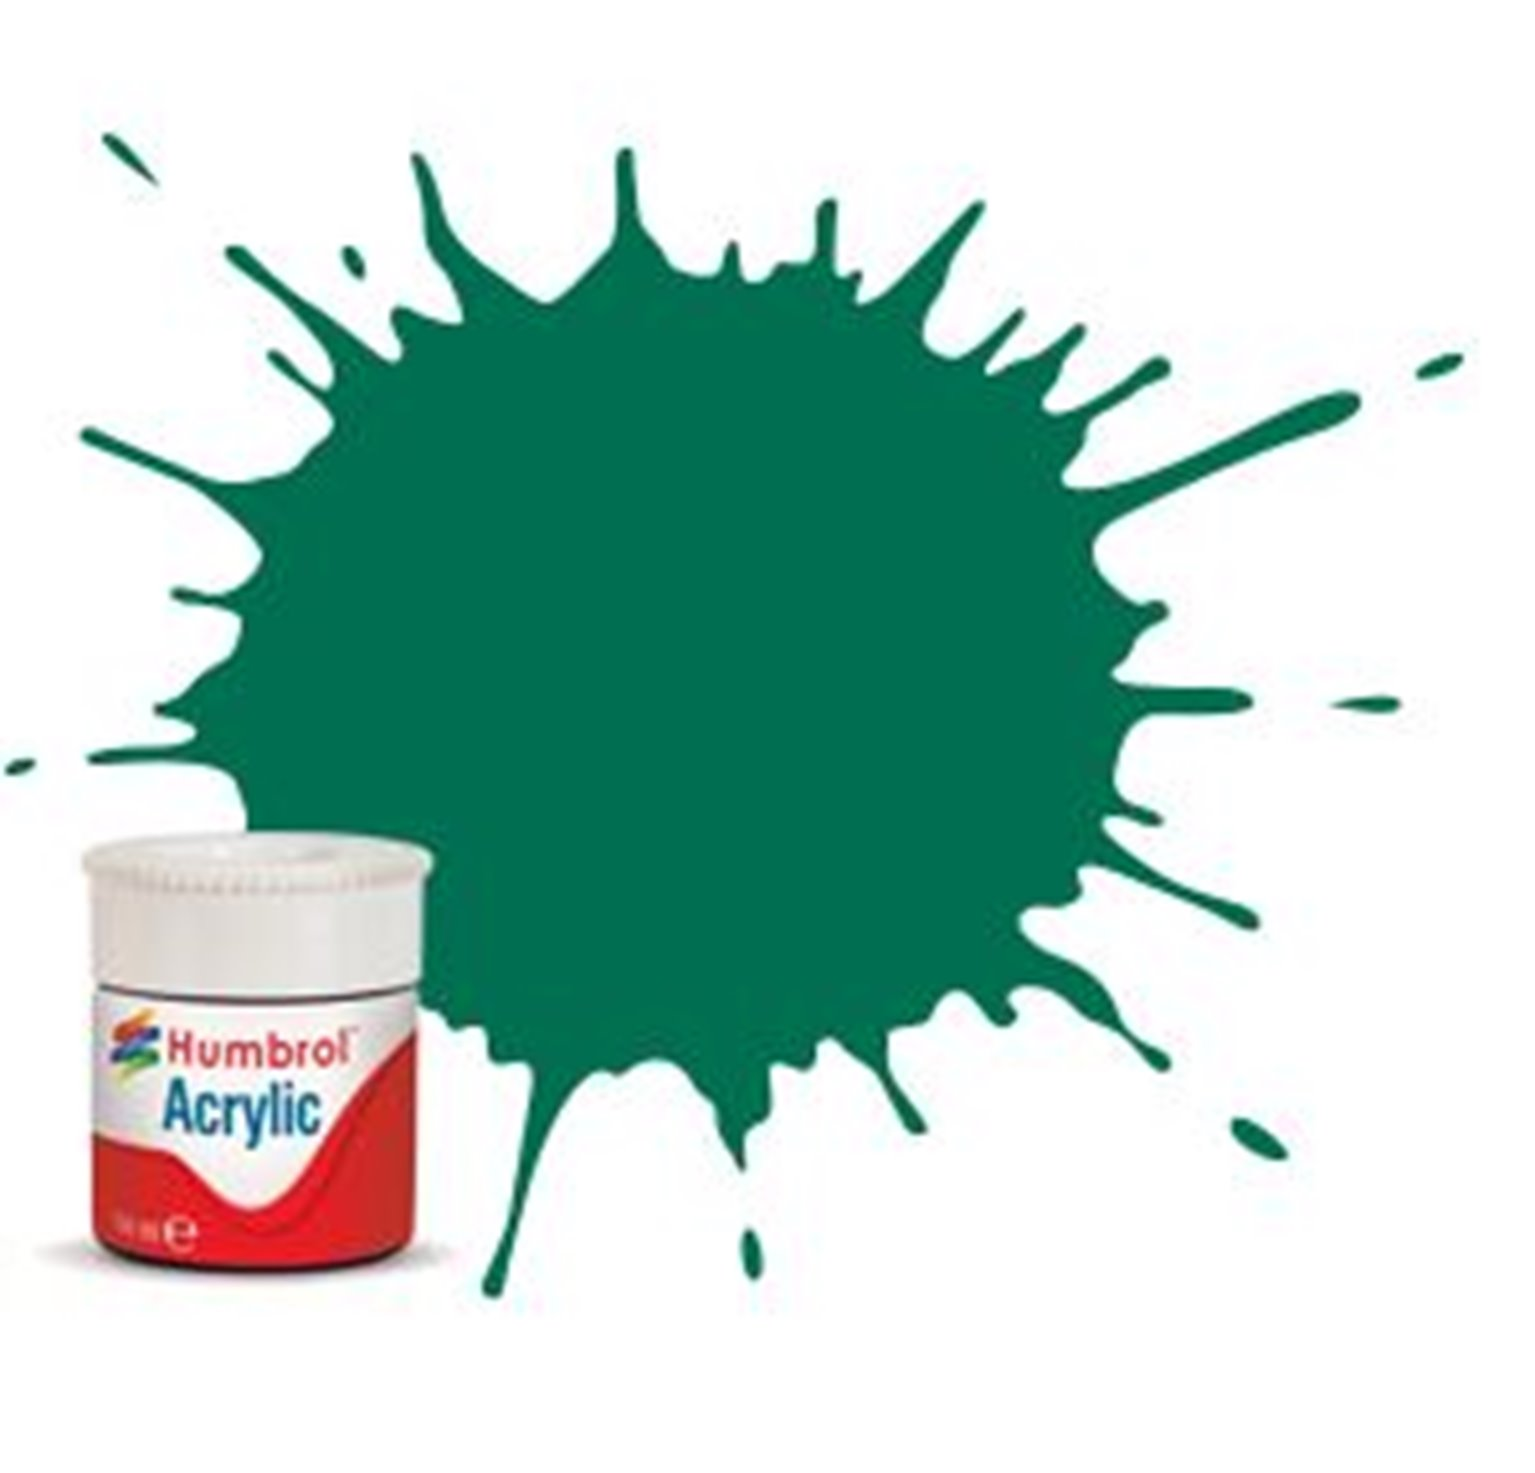 Humbrol RC409 Malachite Green Matt - 14ml Acrylic Rail Colour Paint